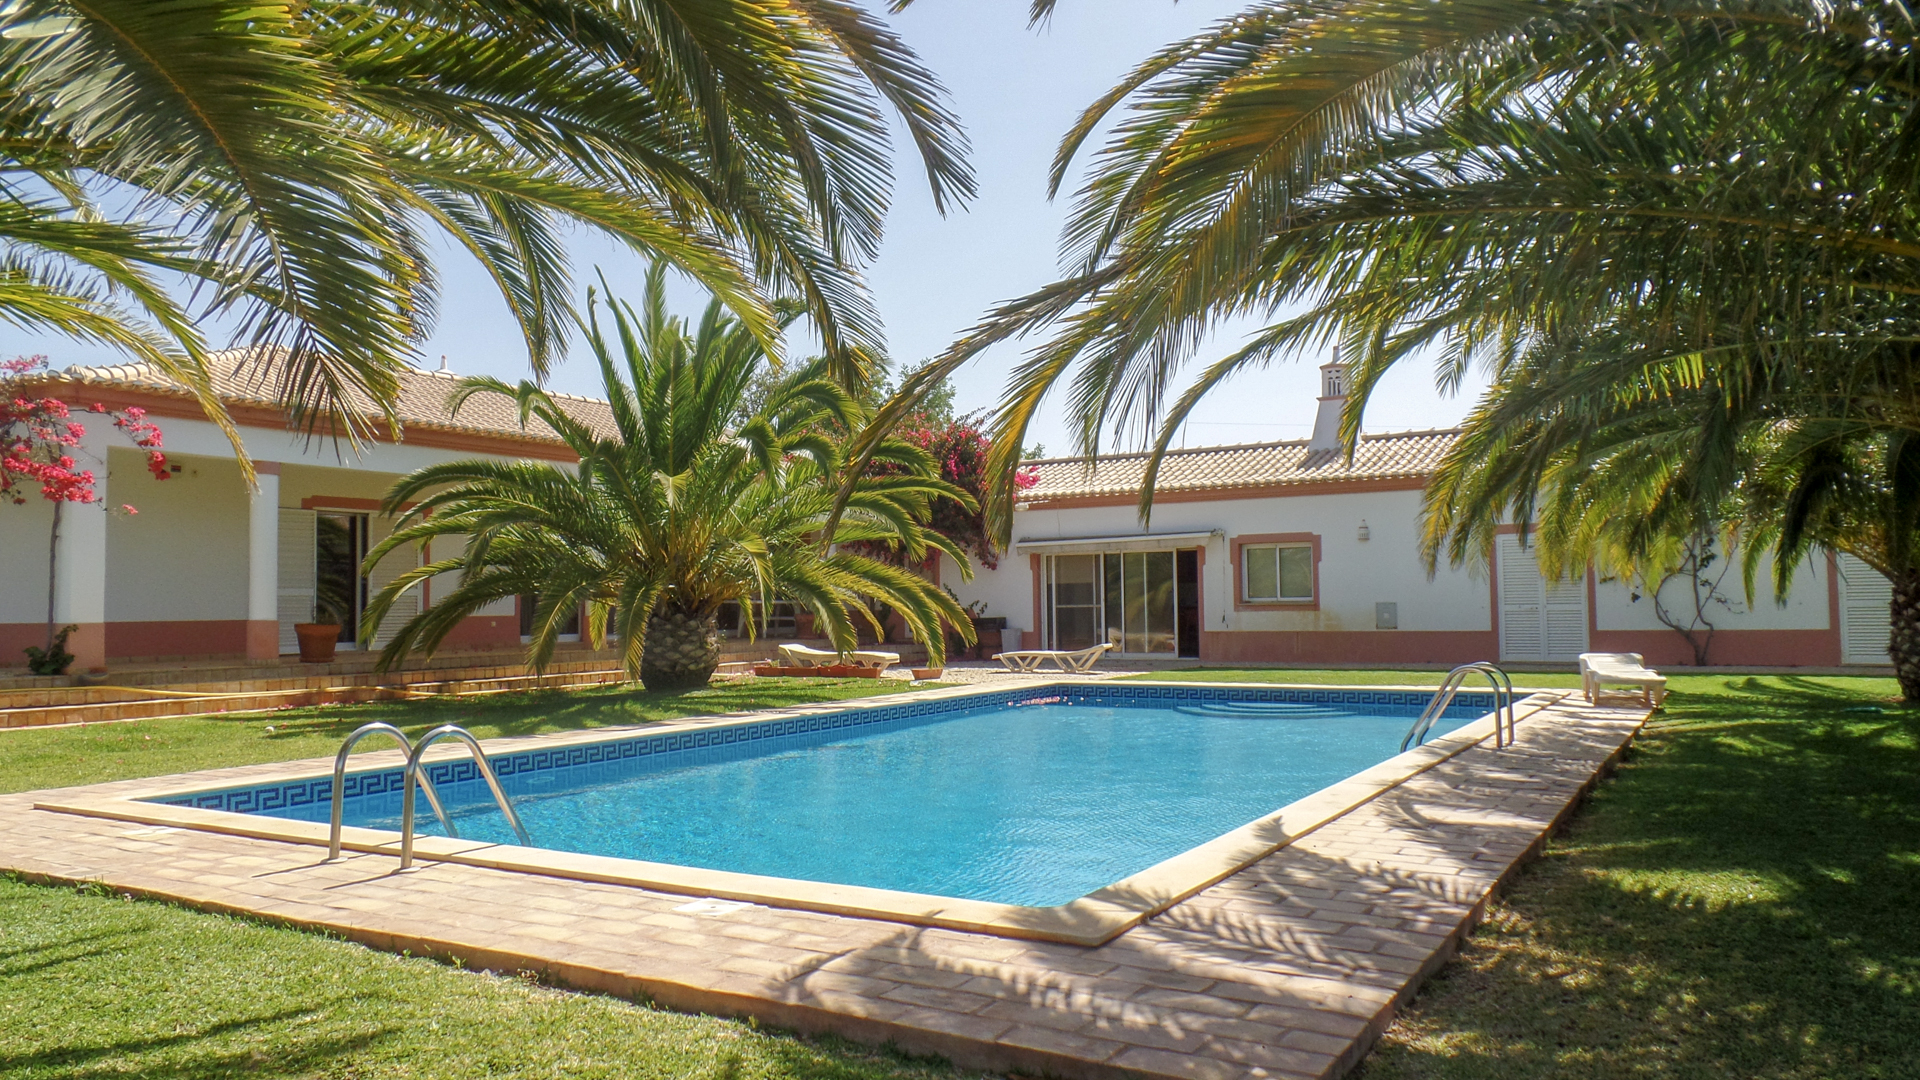 Tranquil 6 Bedrooms Mediterranean Style Villa, 5 min drive to Beach and Albufeira | S5183